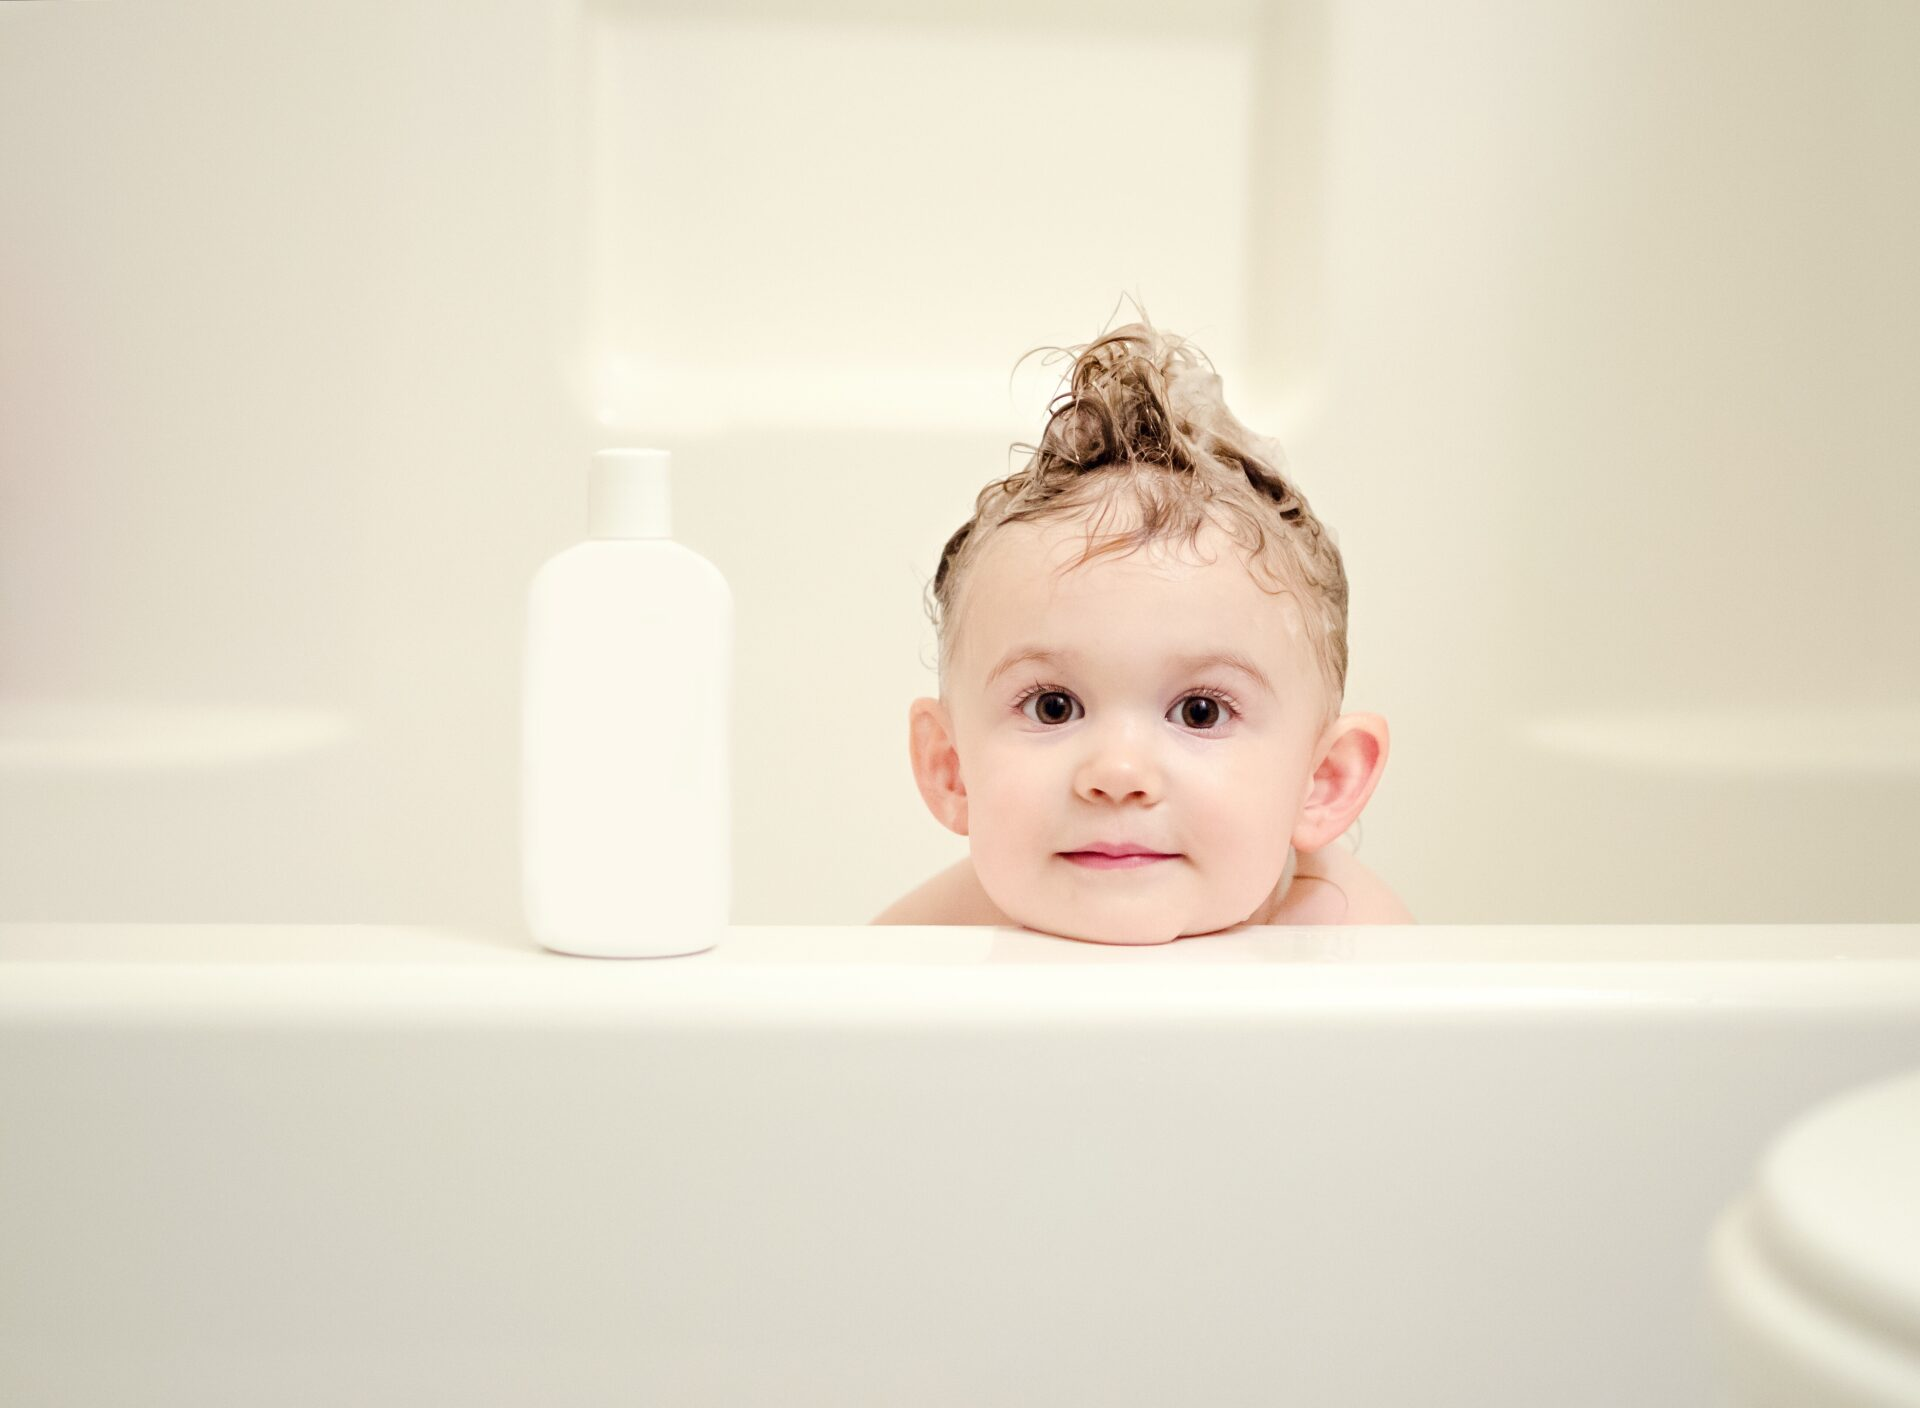 kids hair,toddlers,hair wash,bath time,kids,halal shampoo,natural shampoo,paraben free,shampoo,soap free,tear free,baby shampoo,Muslim shampoo,halal products,natural hair,tips,best shampoo,2020,baby,toddlers,thin hair,thick hair,greasy hair,curly hair,detangling shampoo,tangled hair, lice repellent shampoo,shampoo for swimmers,swimming,chlorine removing,muslim mom,muslim mummy